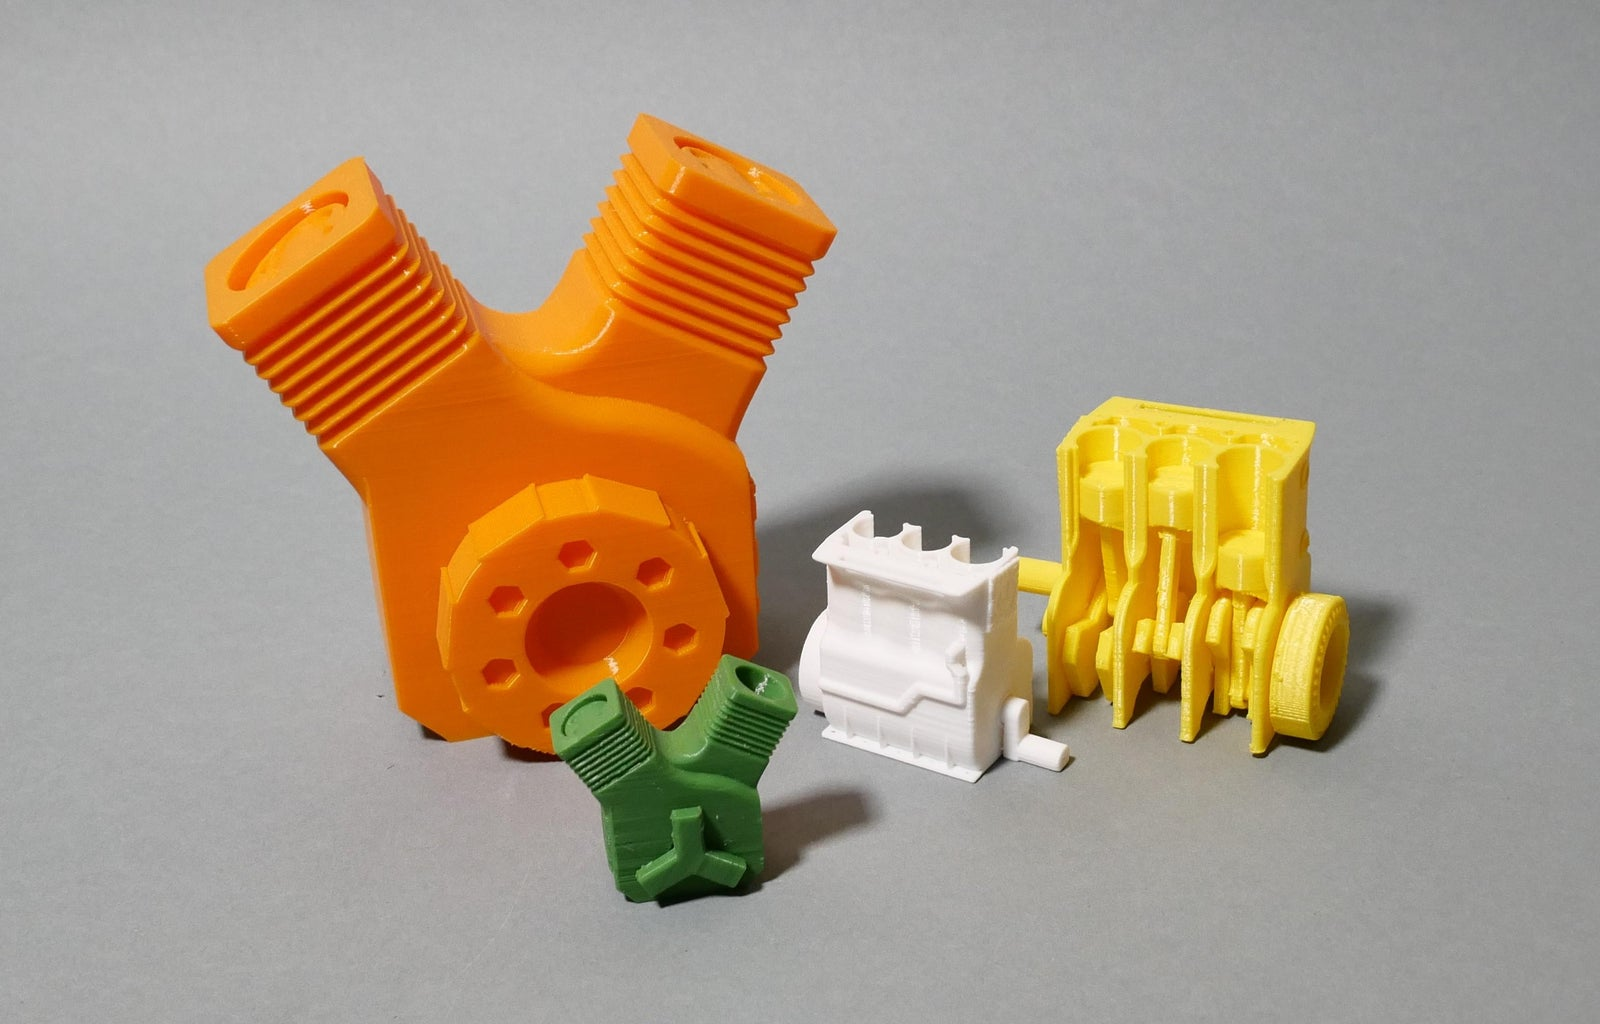 Movable 3D-Printed Engine!